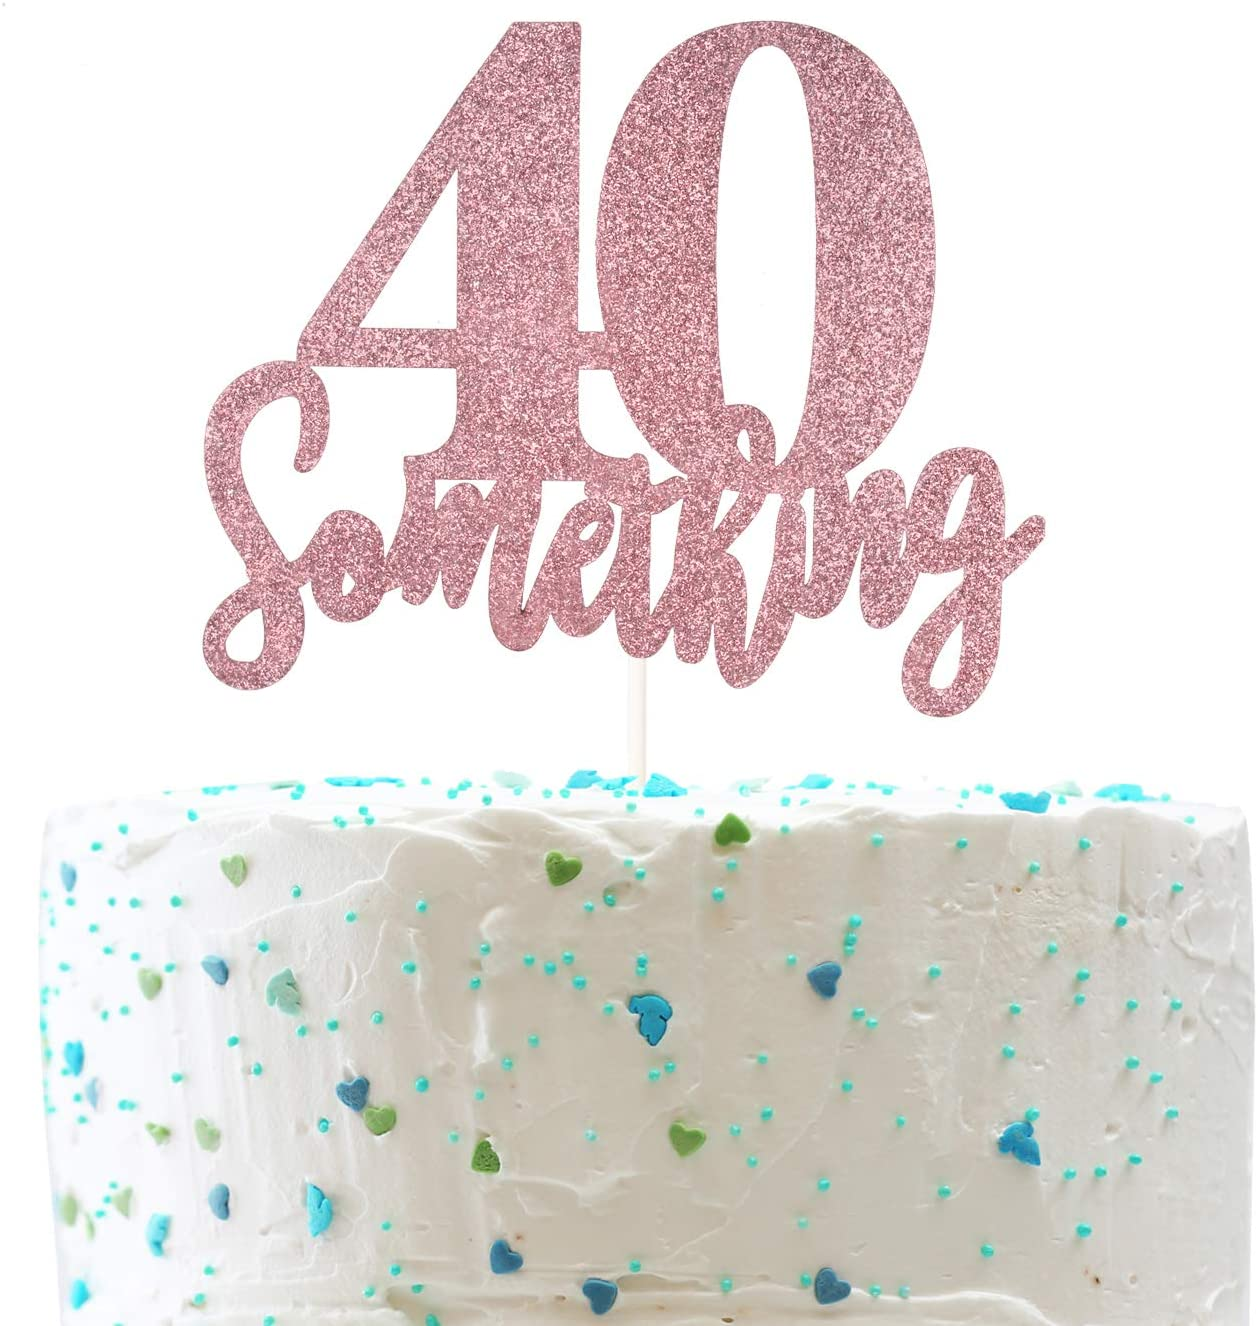 40 Something Cake Topper, Funny 40th Birthday, Cheers to 30 Years Party Decorations (Double Sided Rose Gold Glitter)